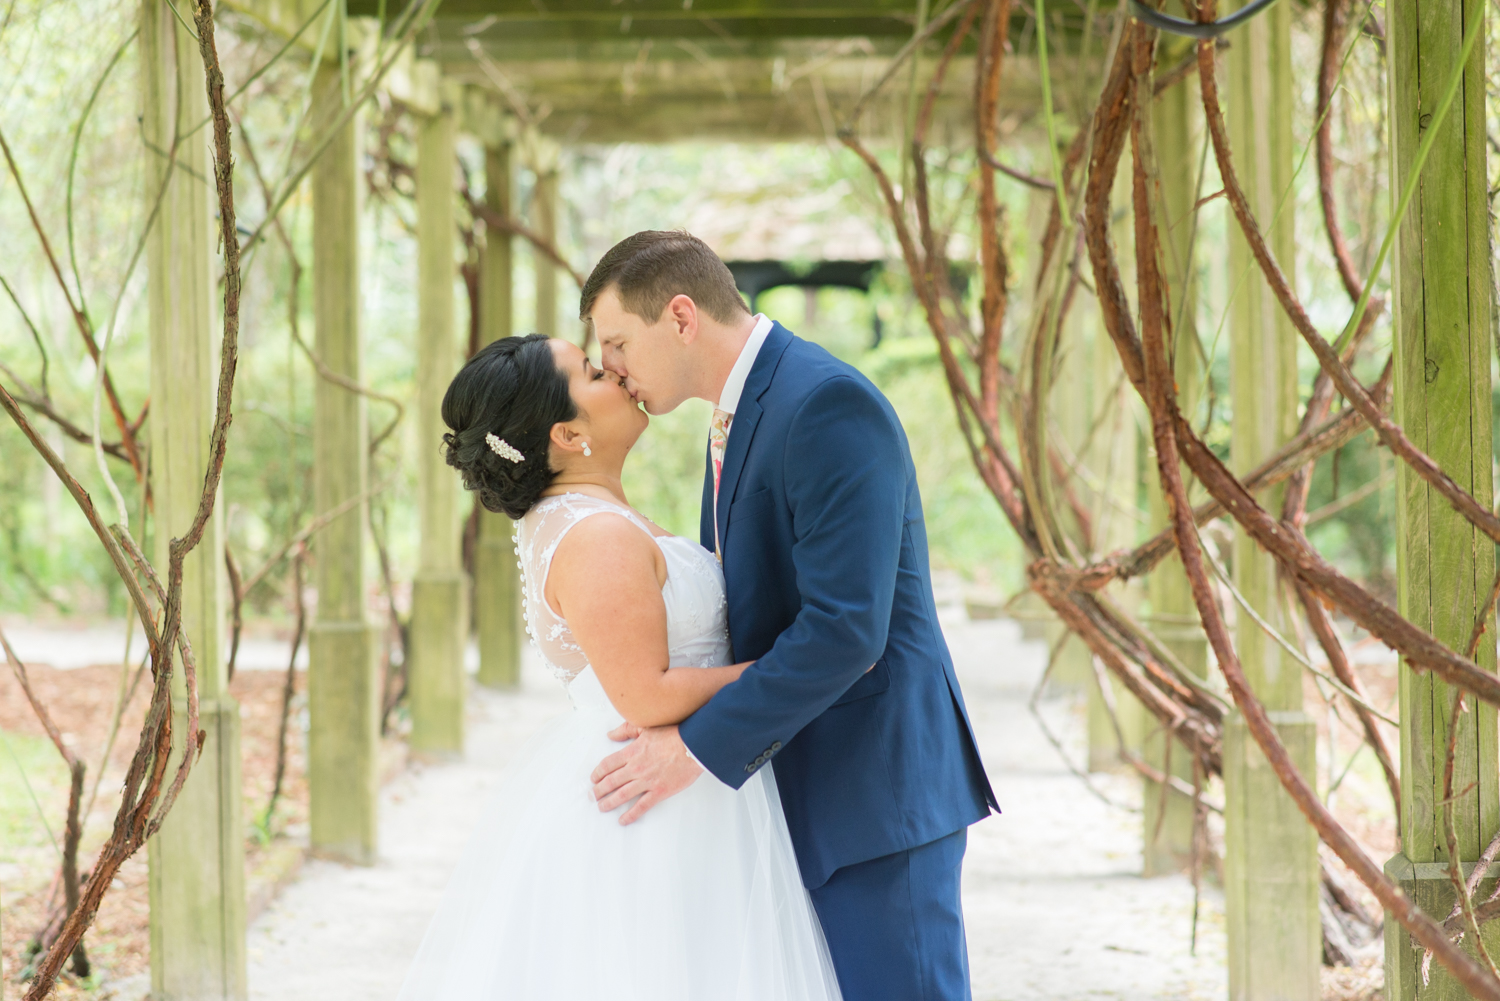 Geoff & Alicia Tice | Lace House Wedding | Charlotte, NC Wedding Photographer